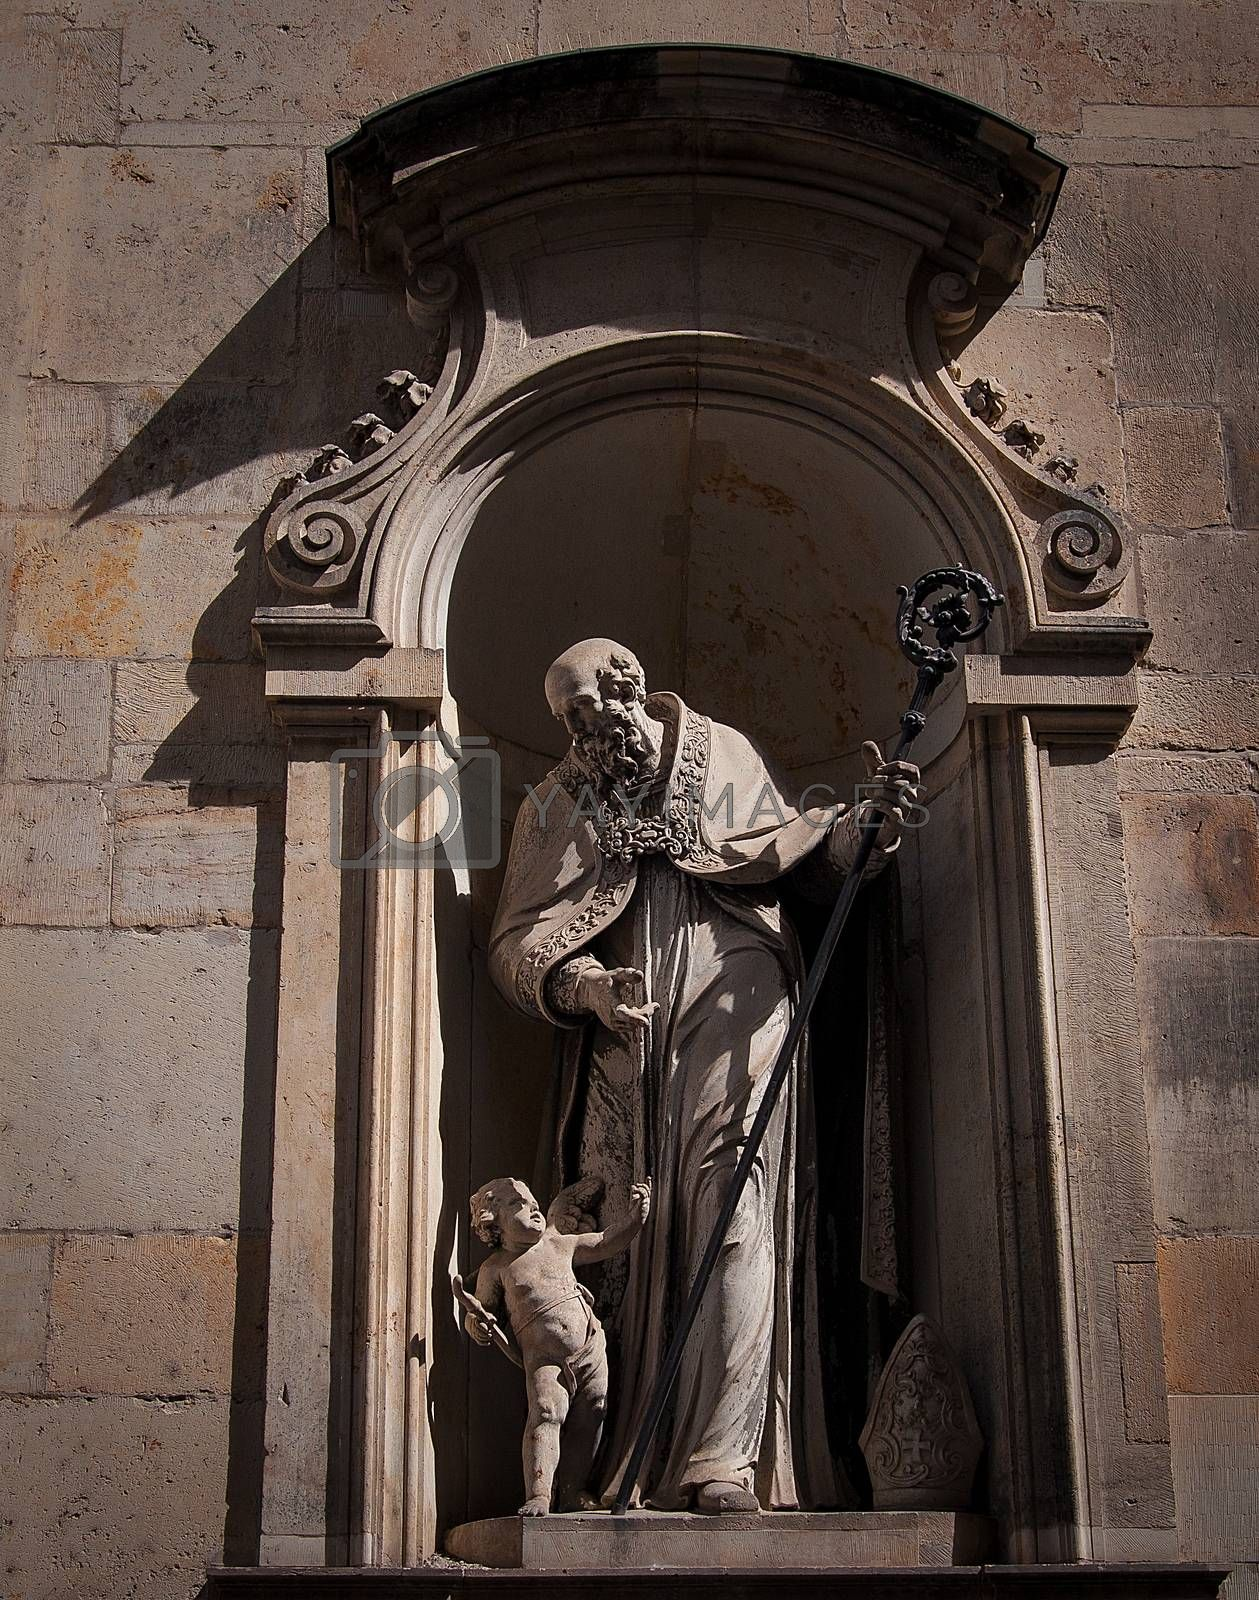 Royalty free image of Dresden, Germany, Statue in Zwinger. by sfinks